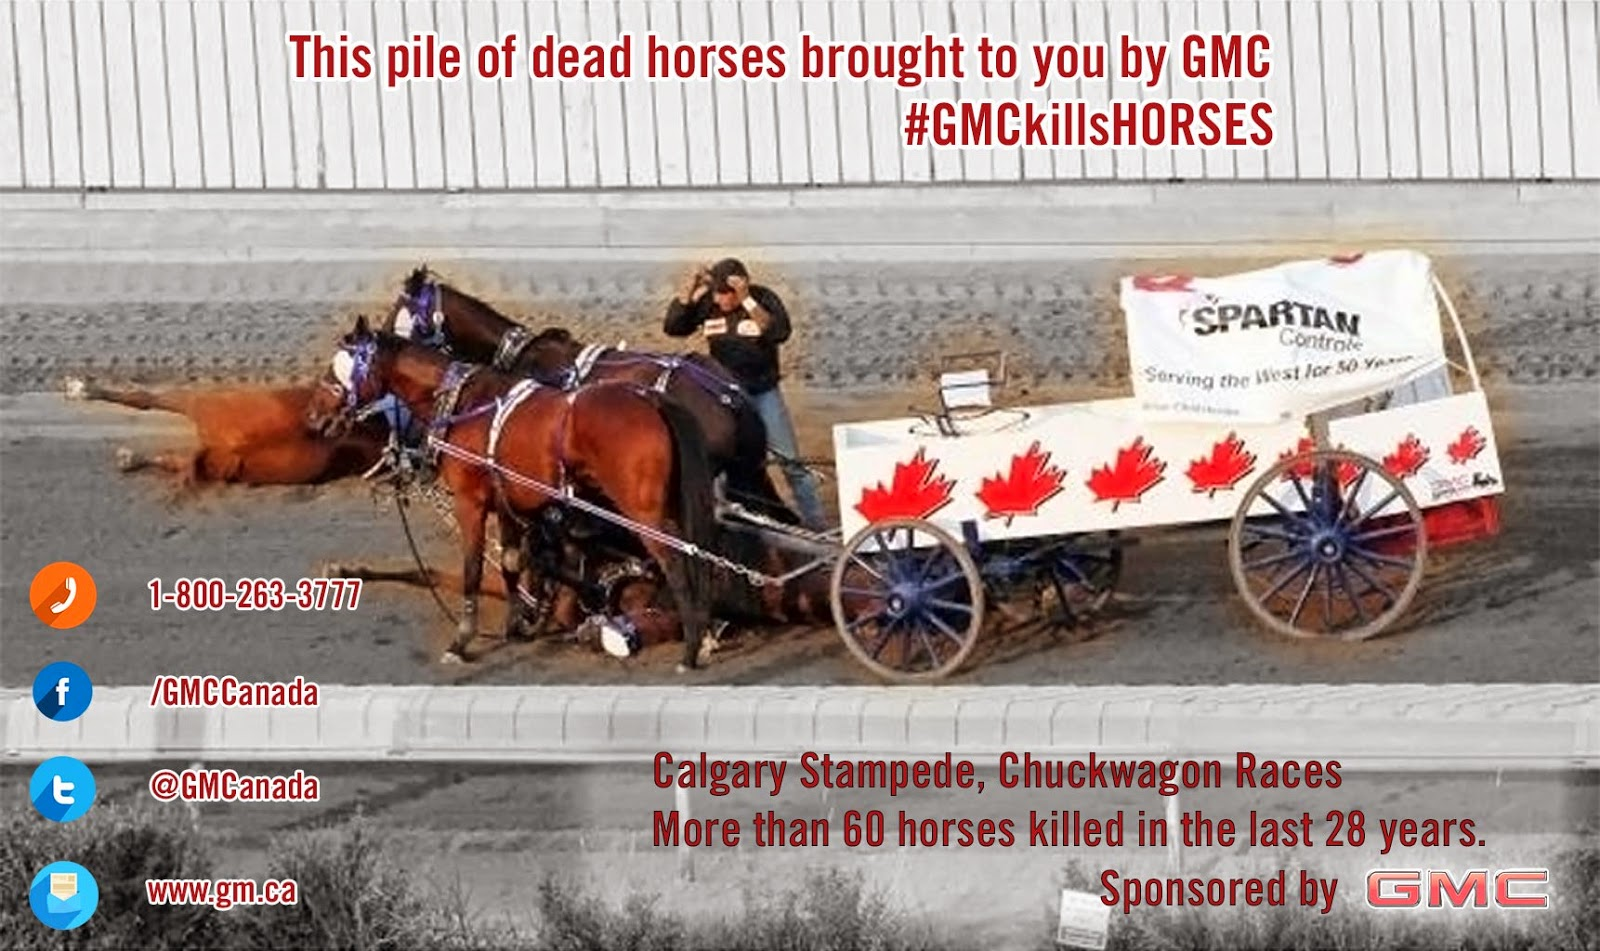 Stampede Lockdown At Calgary Chuckwagon Races Earth